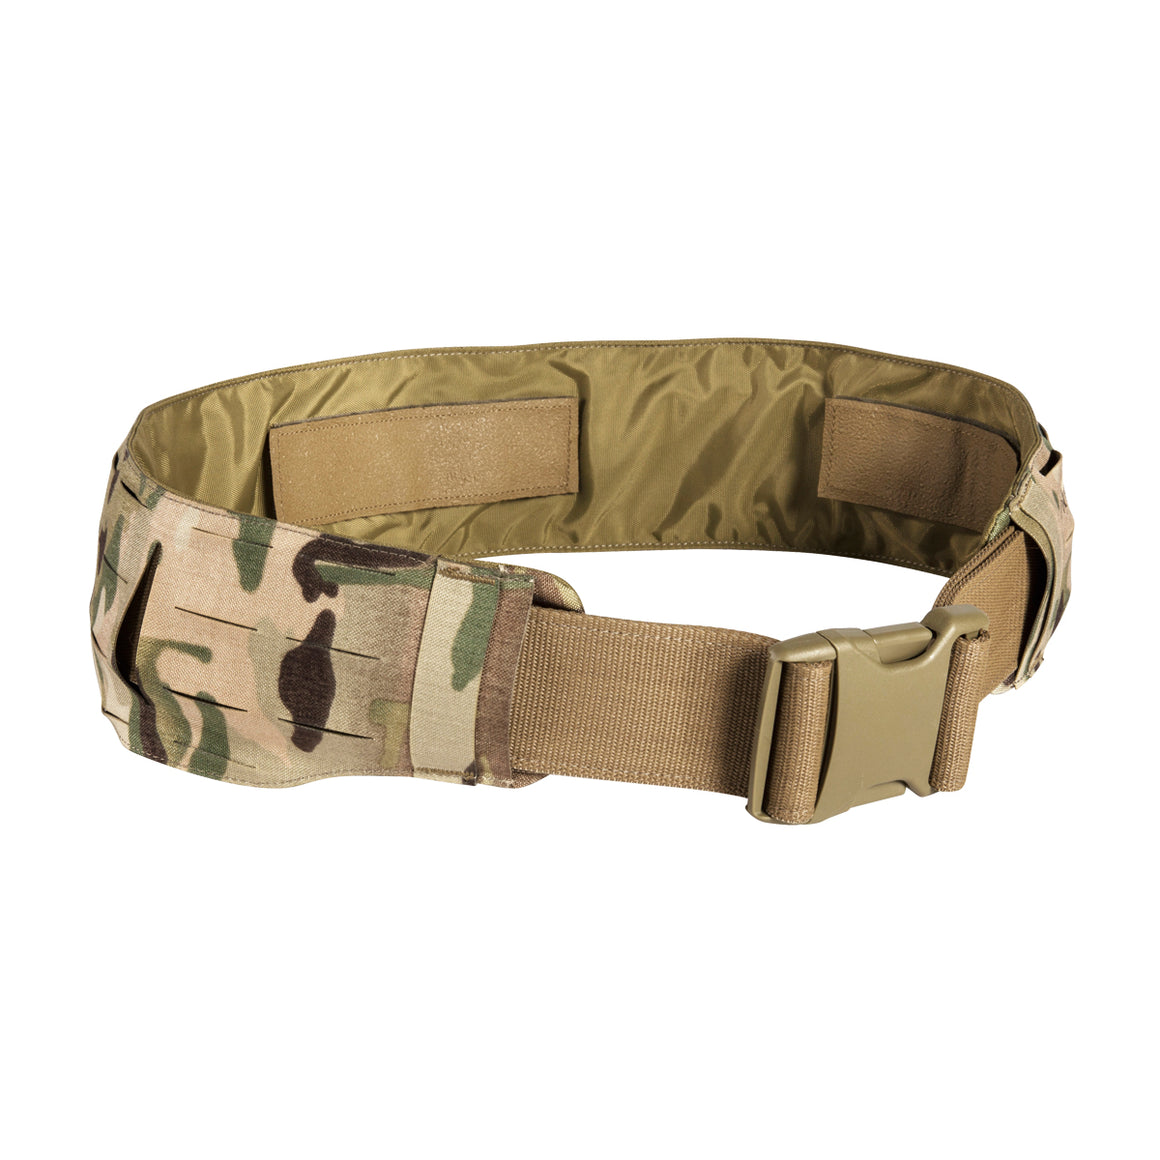 Tasmanian Tiger Warrior Belt MK III MultiCam